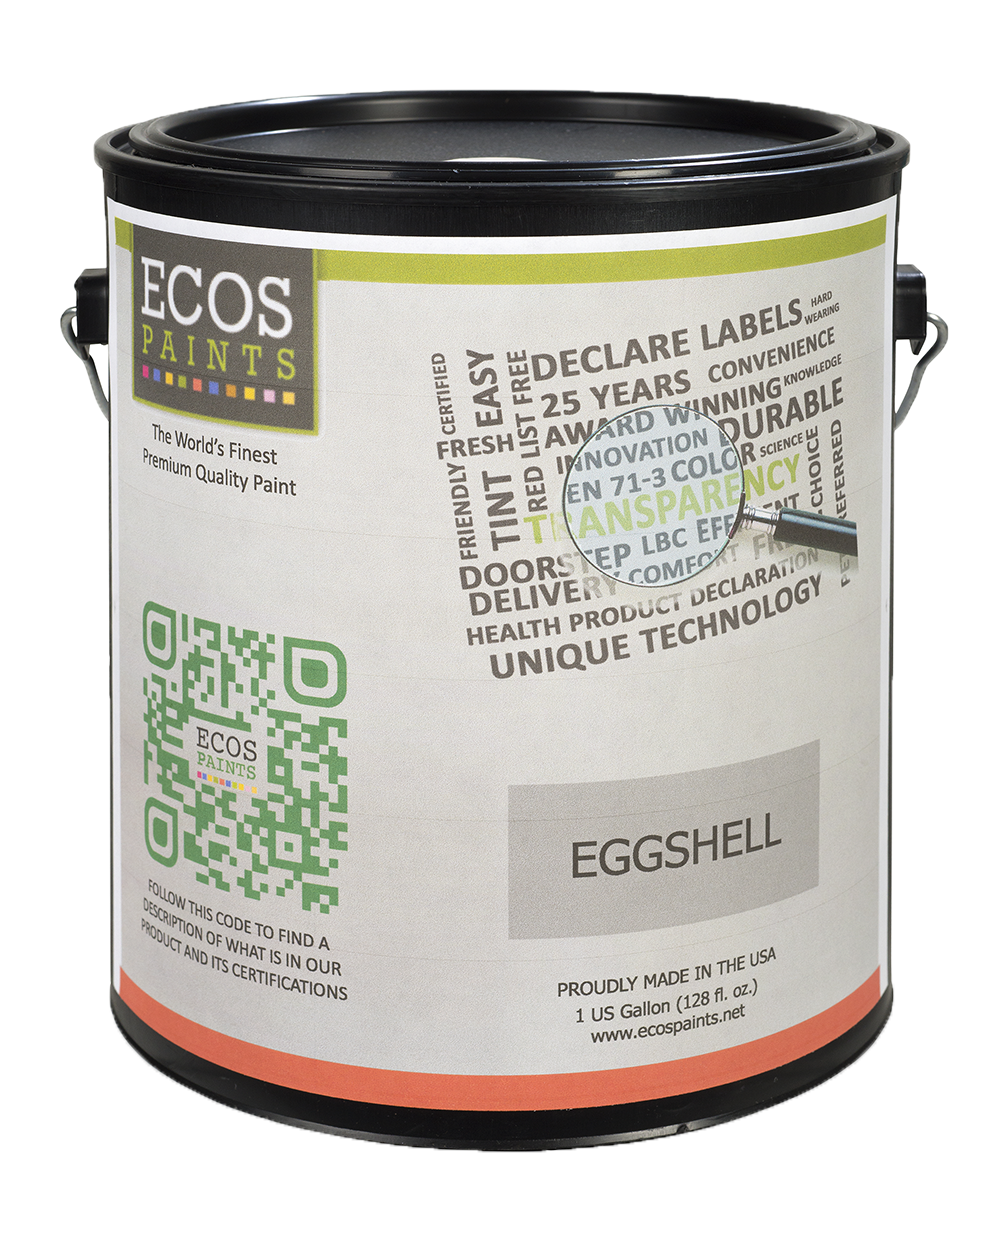 eco paints can